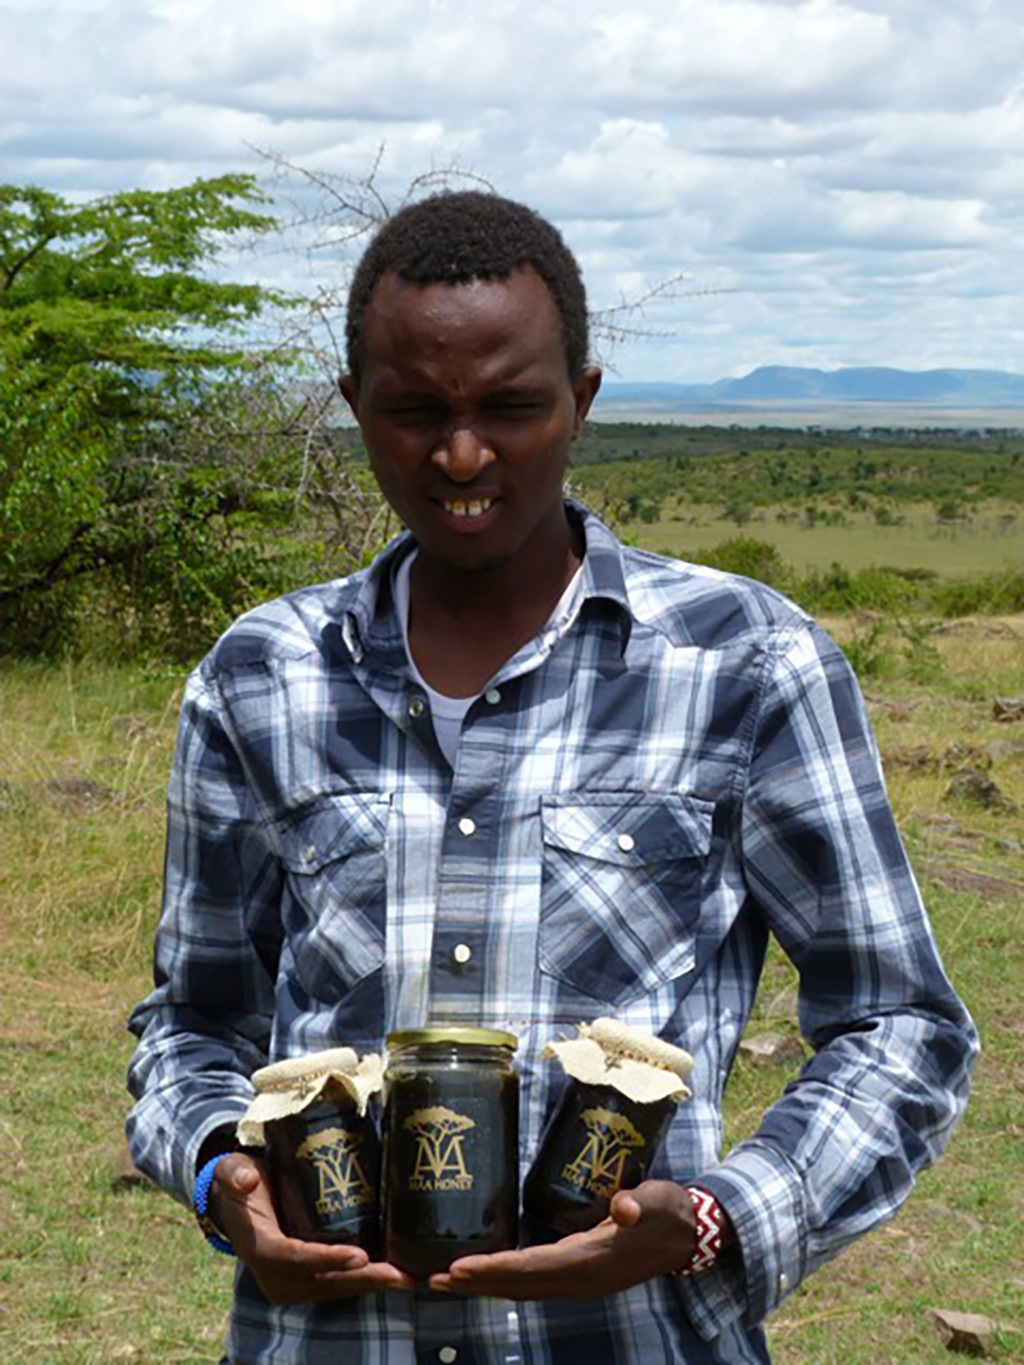 A young man holds three jars of Maa Honey